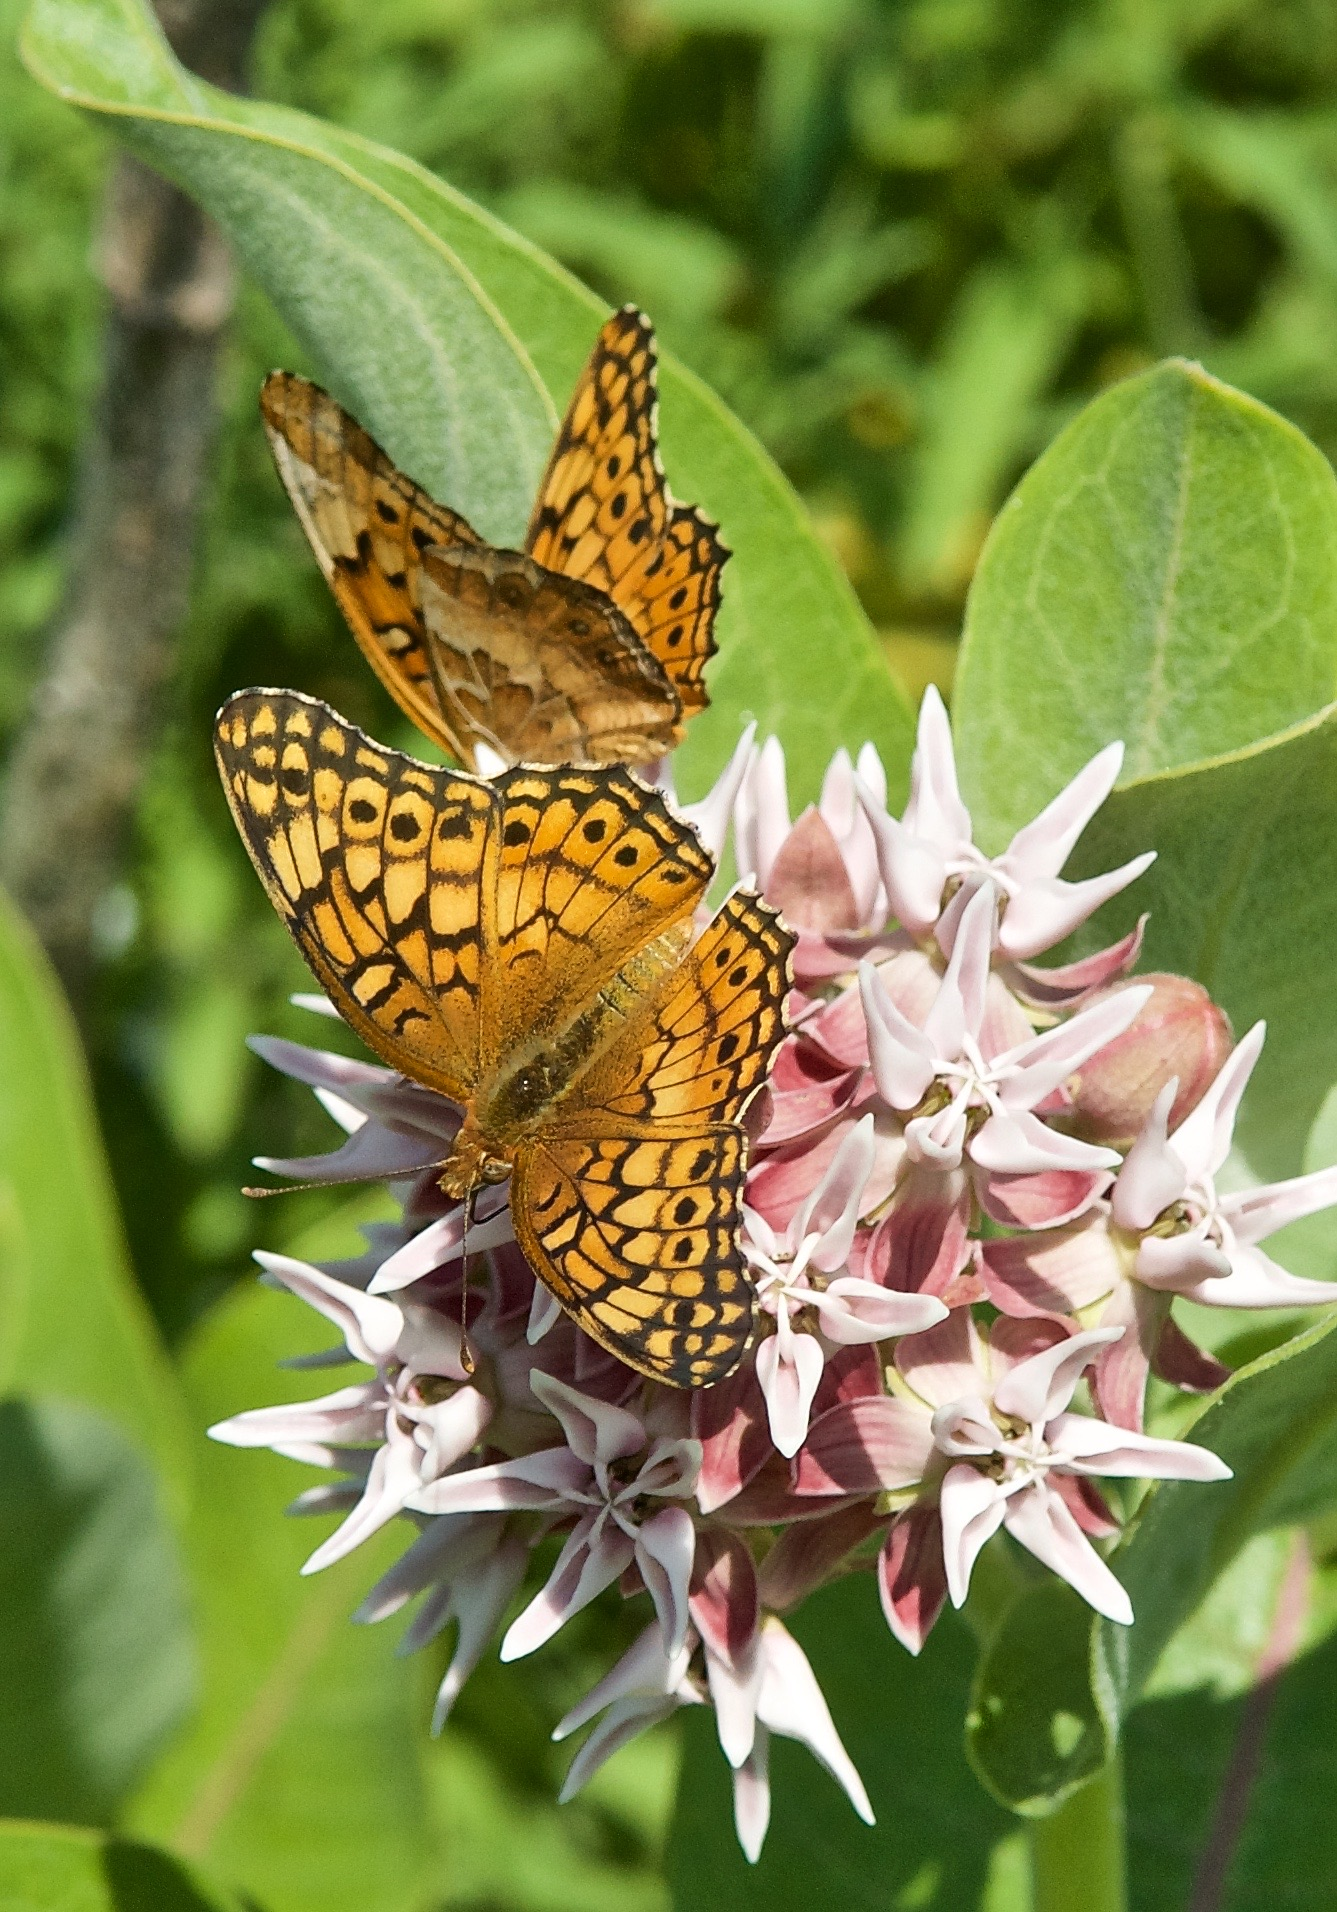 Euptoieta claudia (Butterfly)Variegated Fritillary on Showy Milkweed